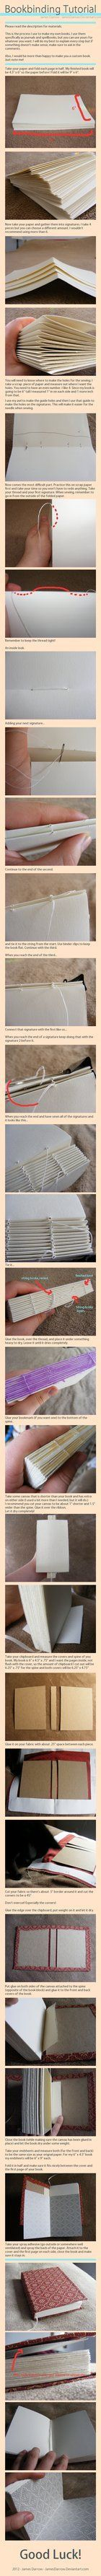 Bookbinding Tutorial By =jamesdarrow On Deviantart